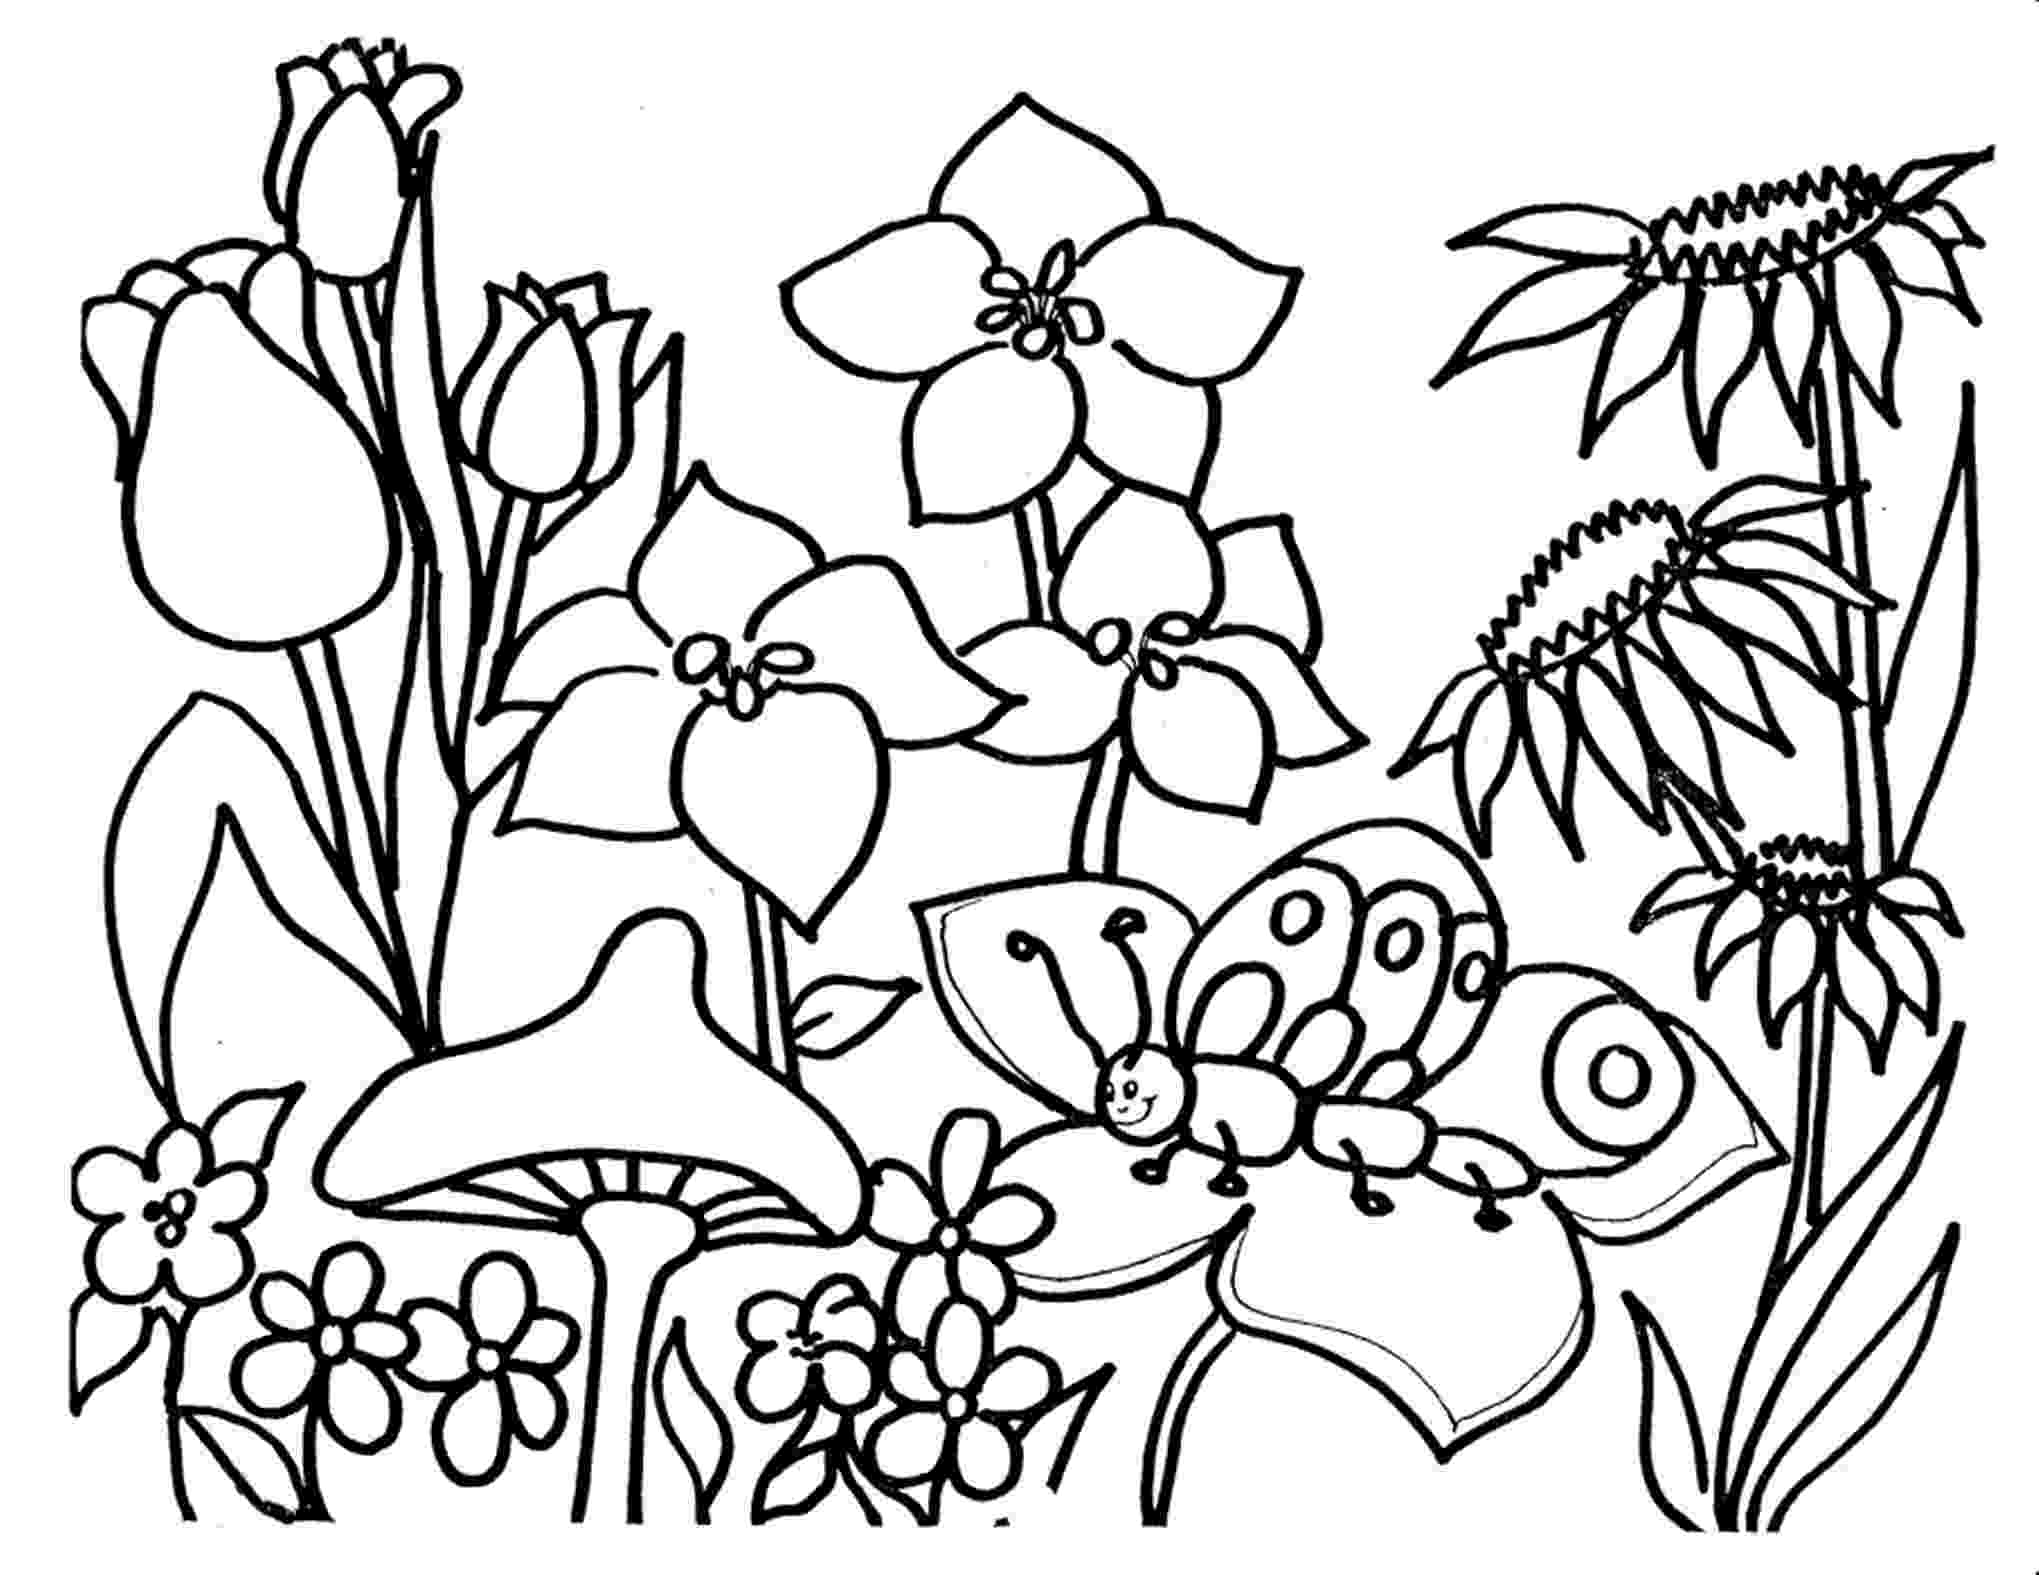 printable flower coloring pages spring flower coloring pages to download and print for free printable flower pages coloring